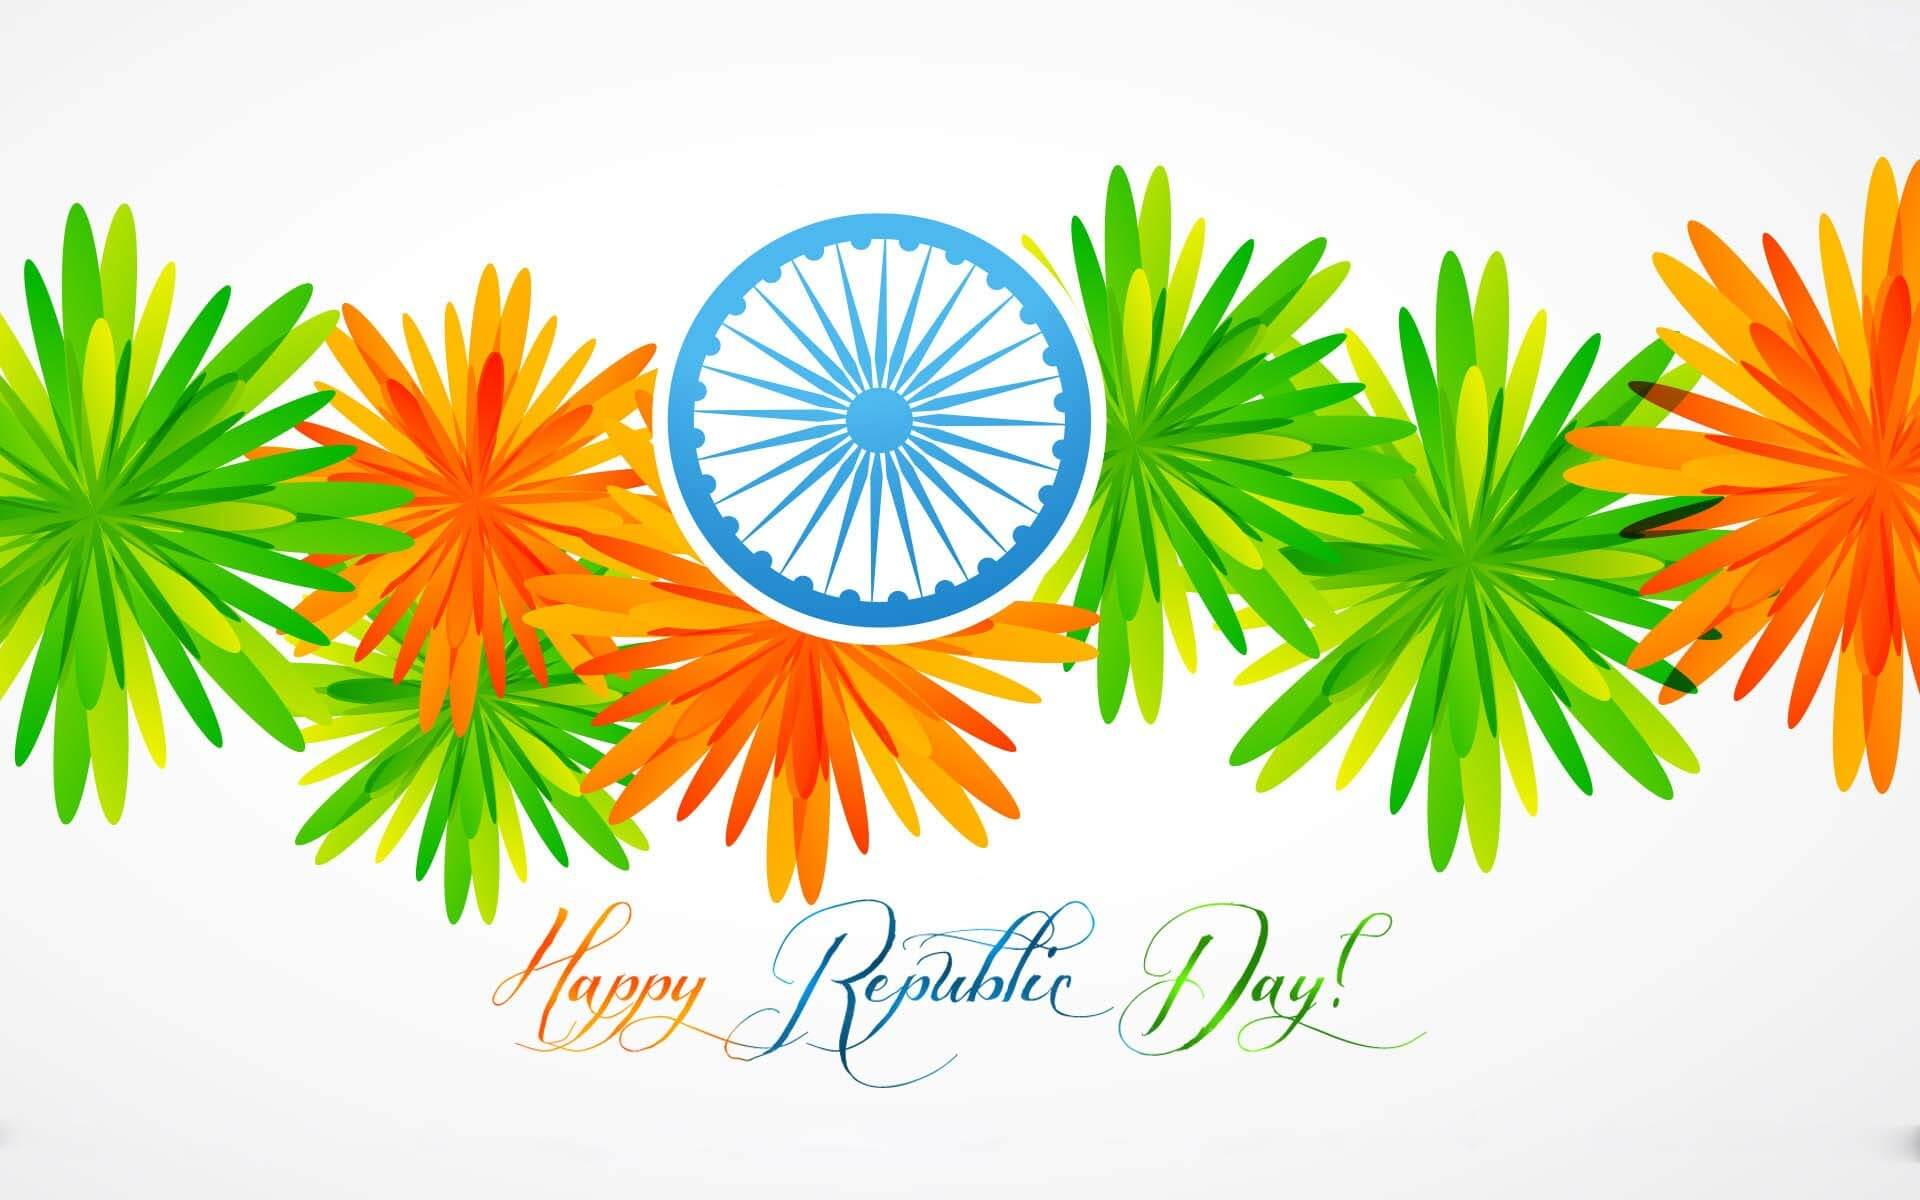 Greetings on Republic Day